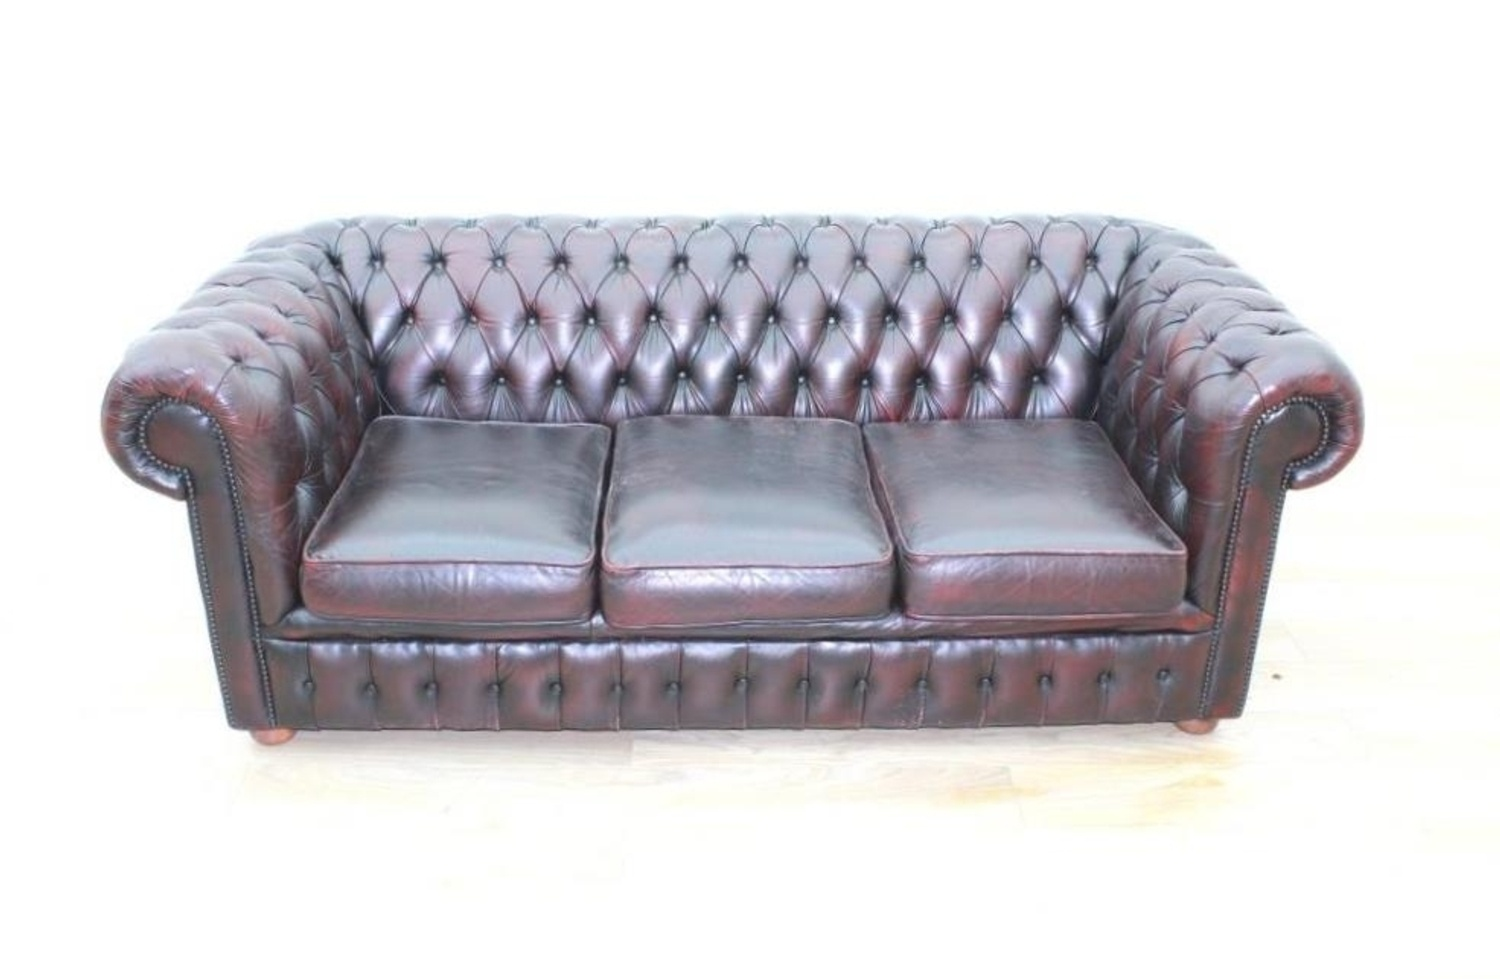 Oxblood Leather Chesterfield Executive Office Reception Sofa